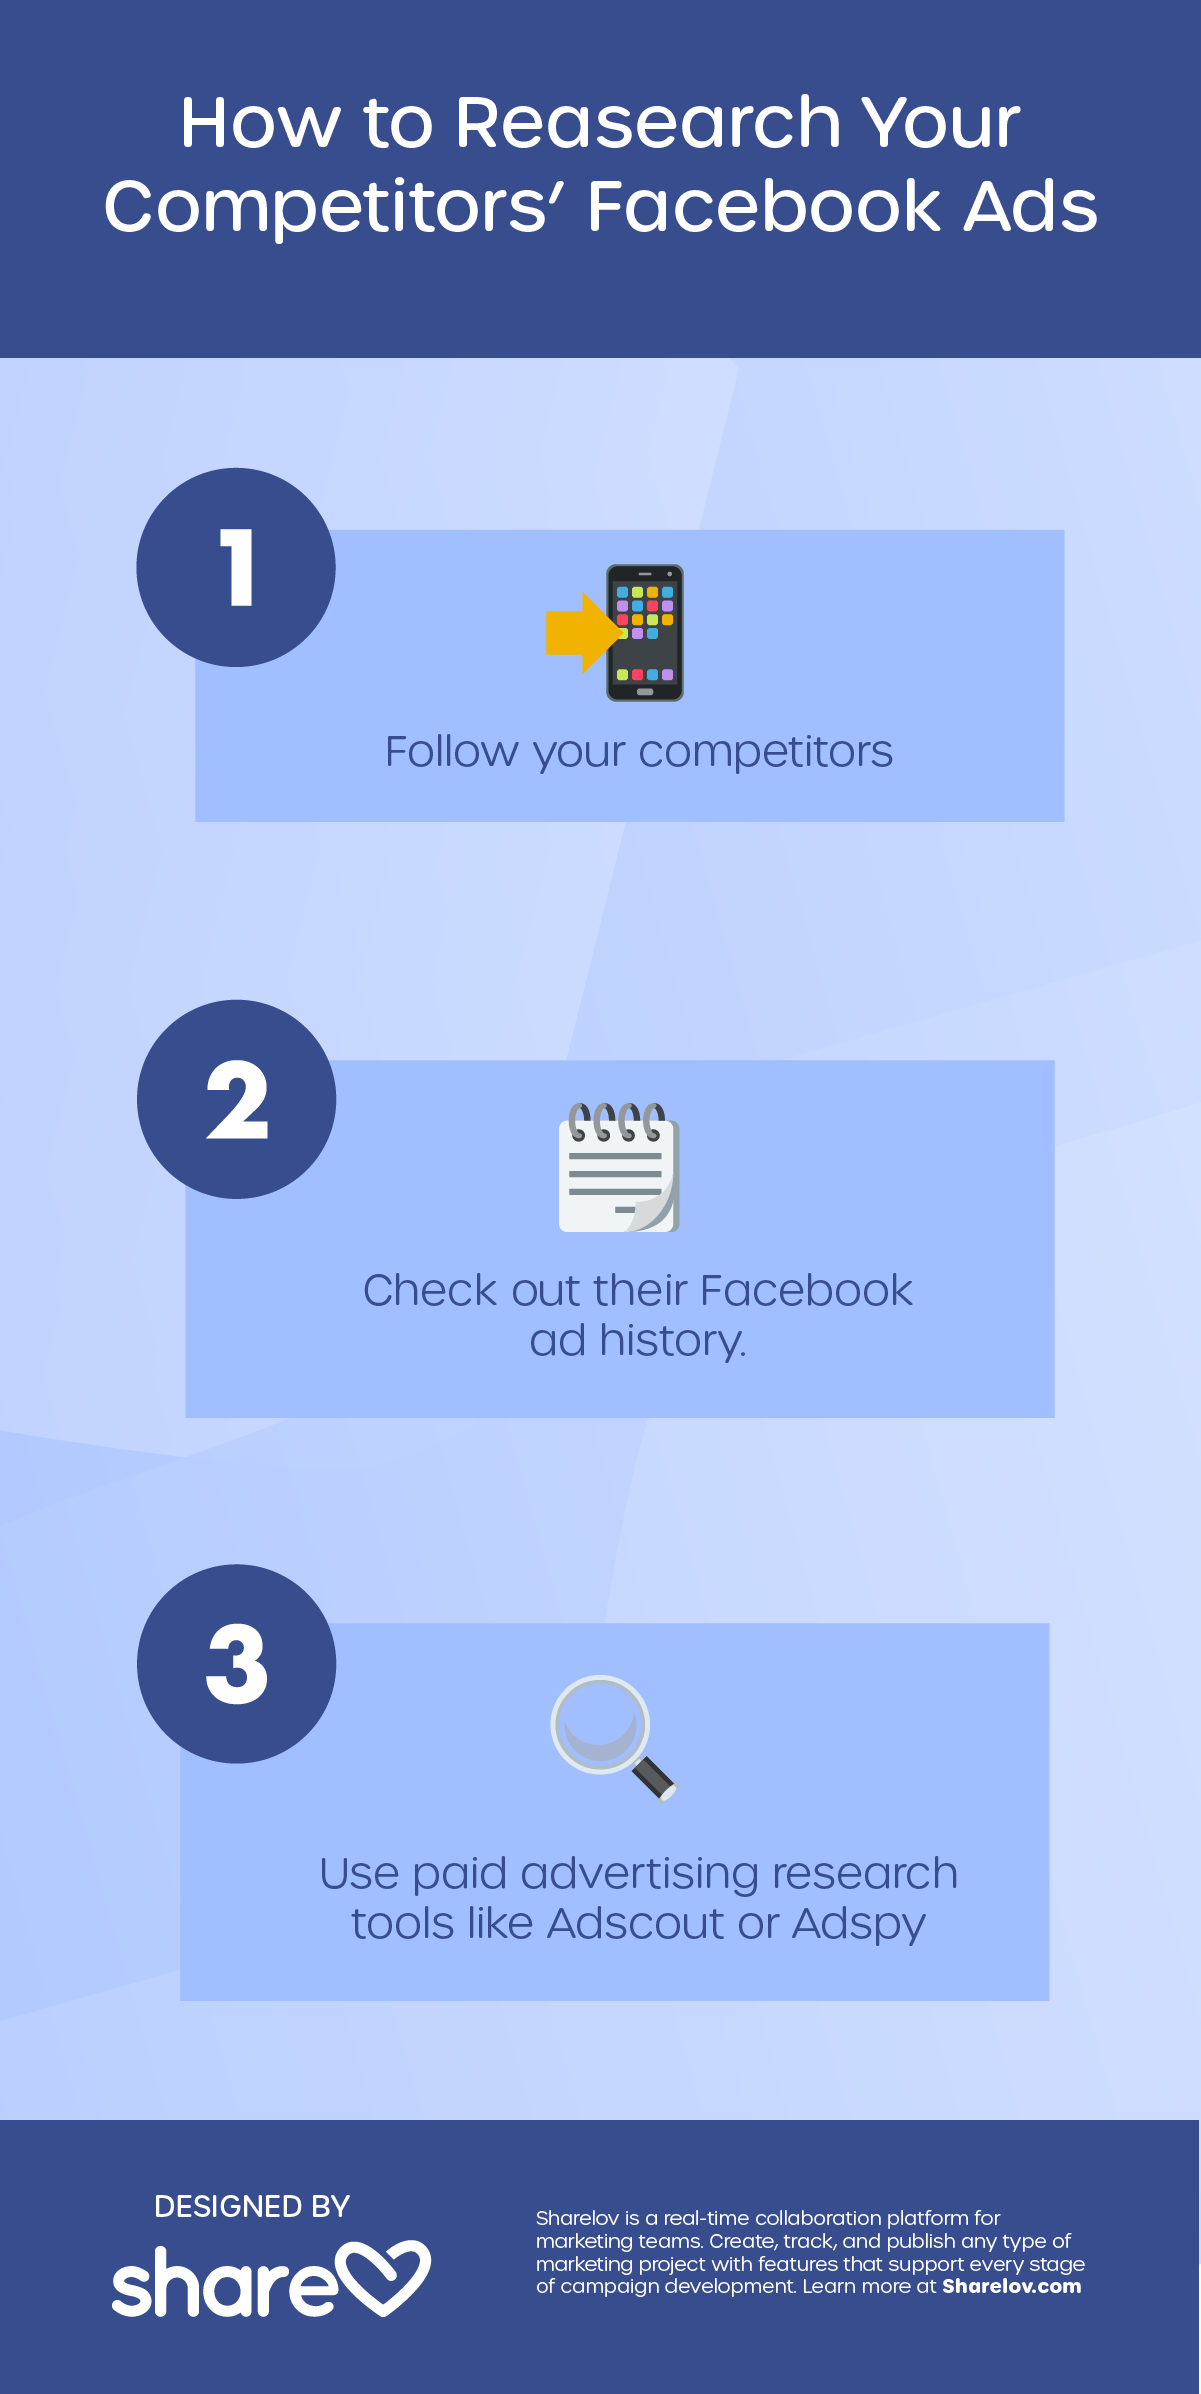 How to Research Your Competitors' Facebook Ads infographic